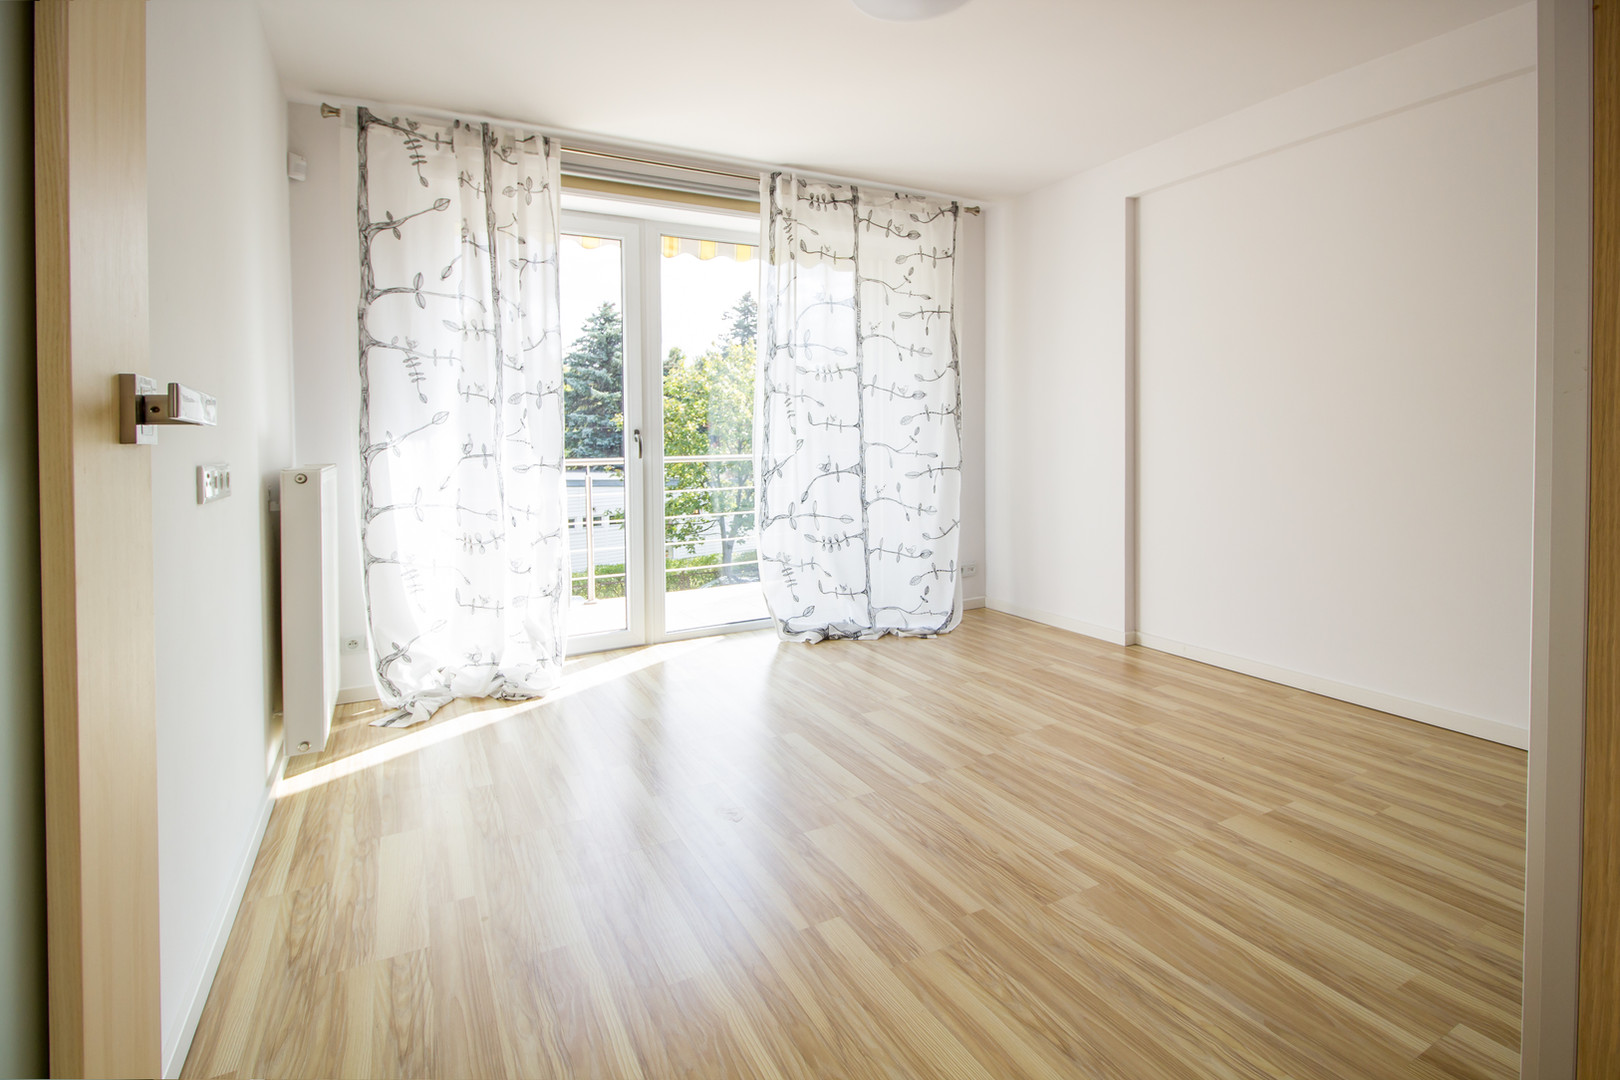 House for rent Poznan Poland (24 of 31).